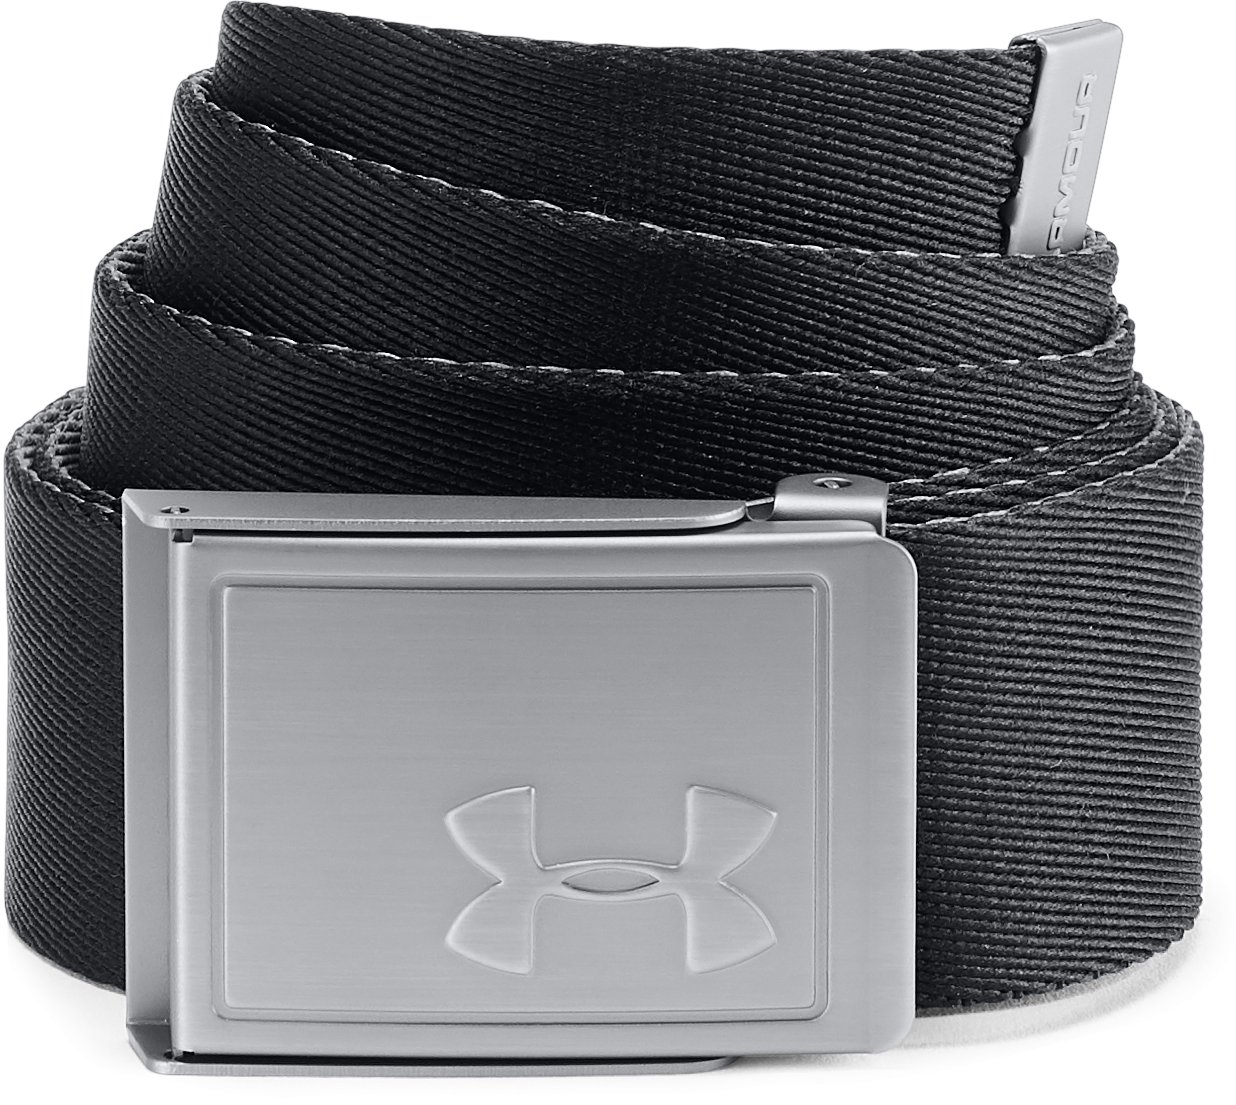 reversible beanies Men's UA Webbing Belt 2.0 Very happy with this belt....Great quality belt from UnderArmour....Great design job UA!